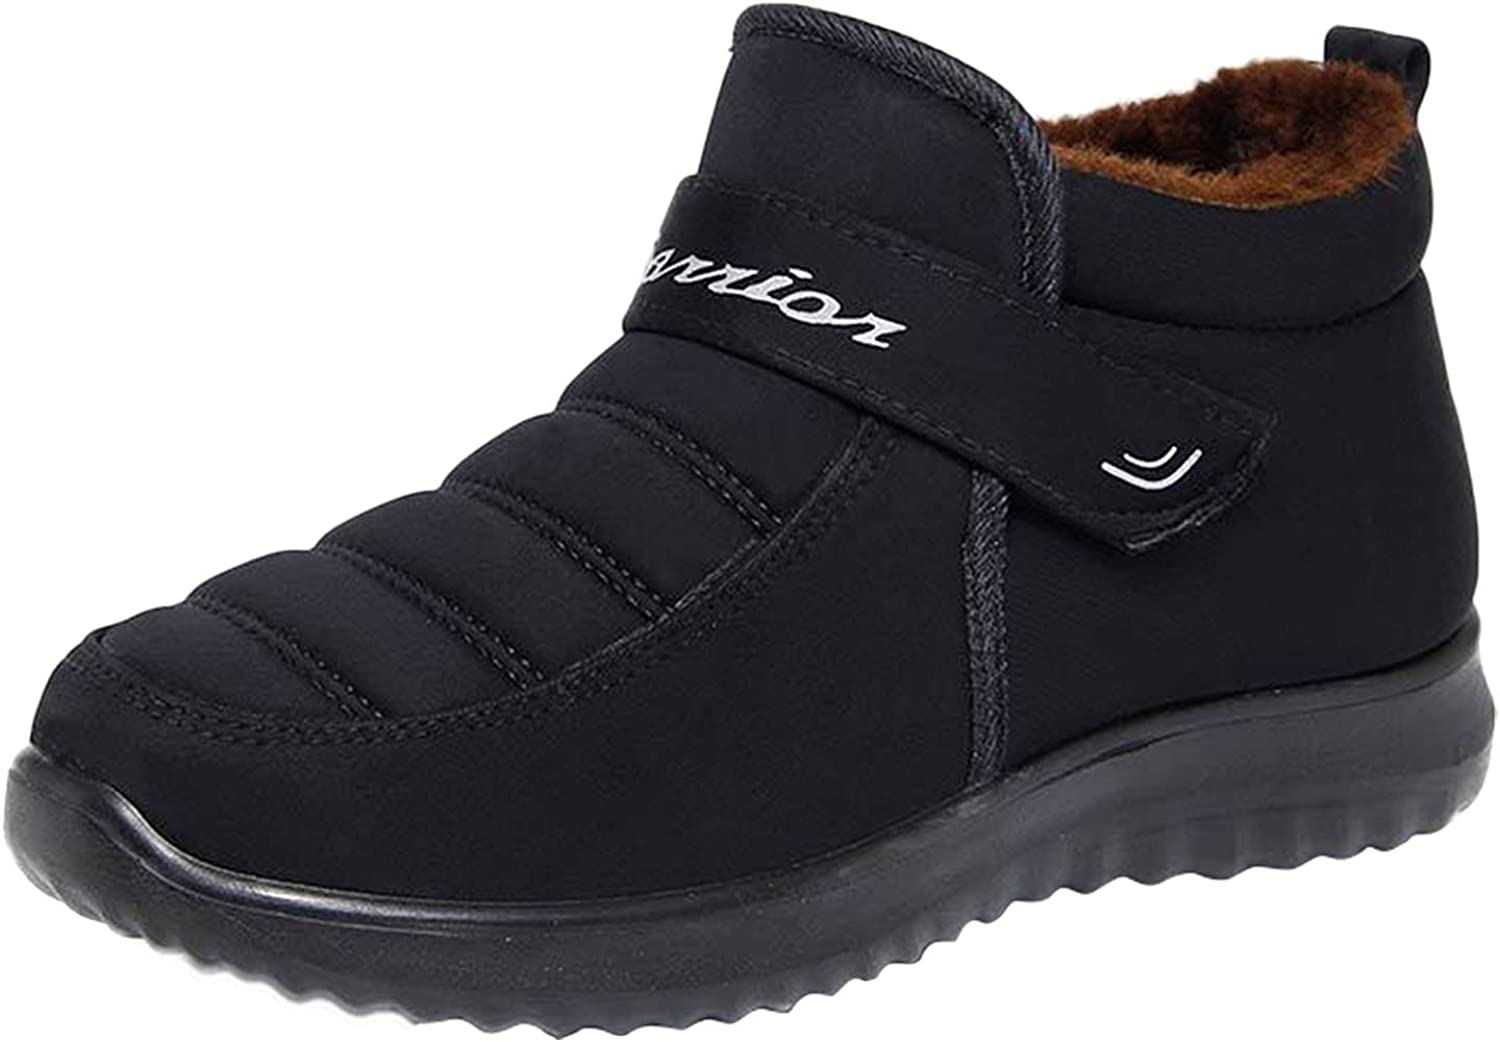 USYFAKGH Cowgirl Boots Women's Shoes Winter Round Toe Outdoor Wa